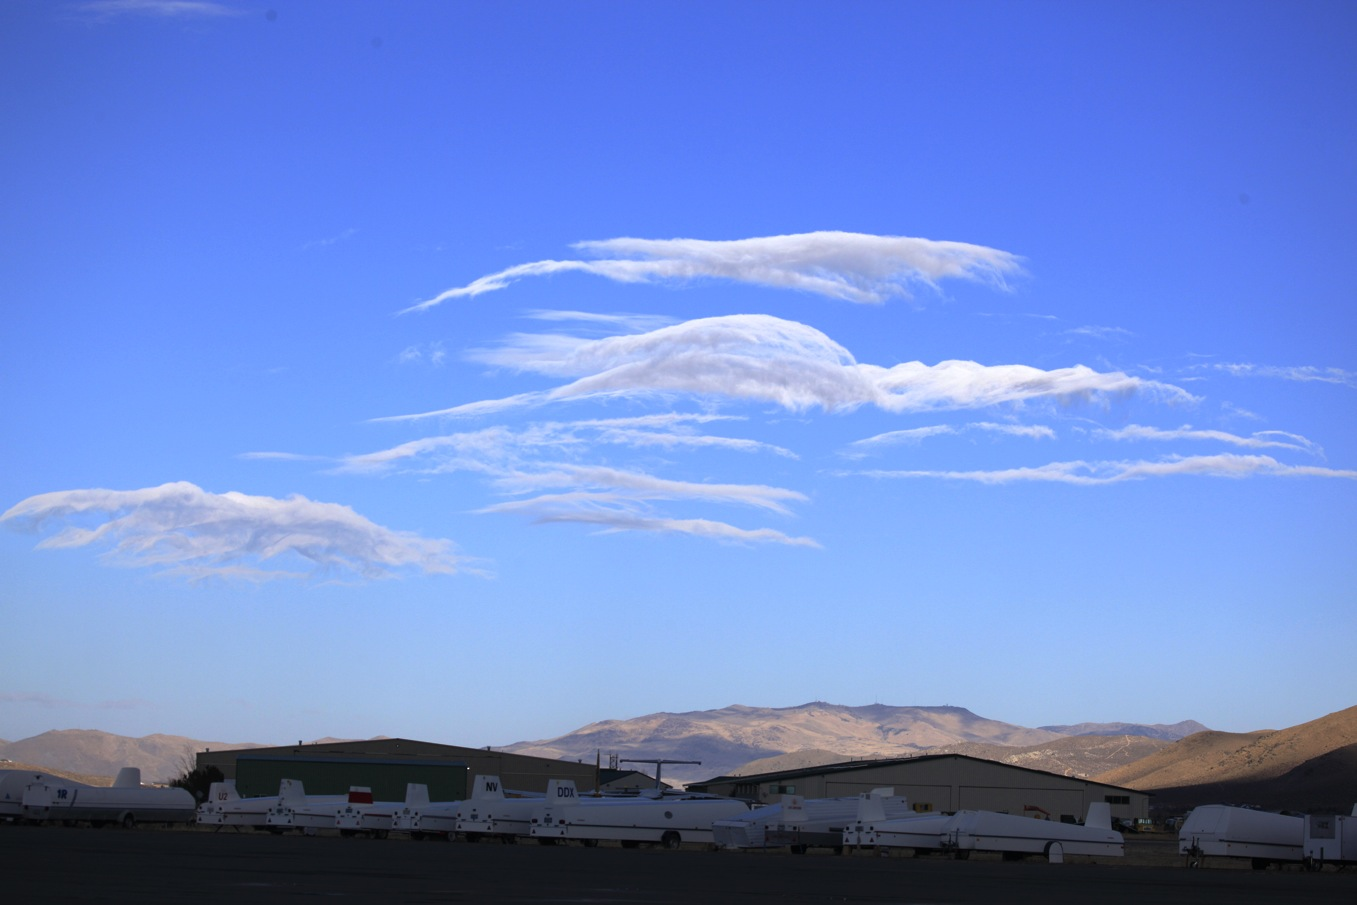 lenticular clouds near Minden, NV